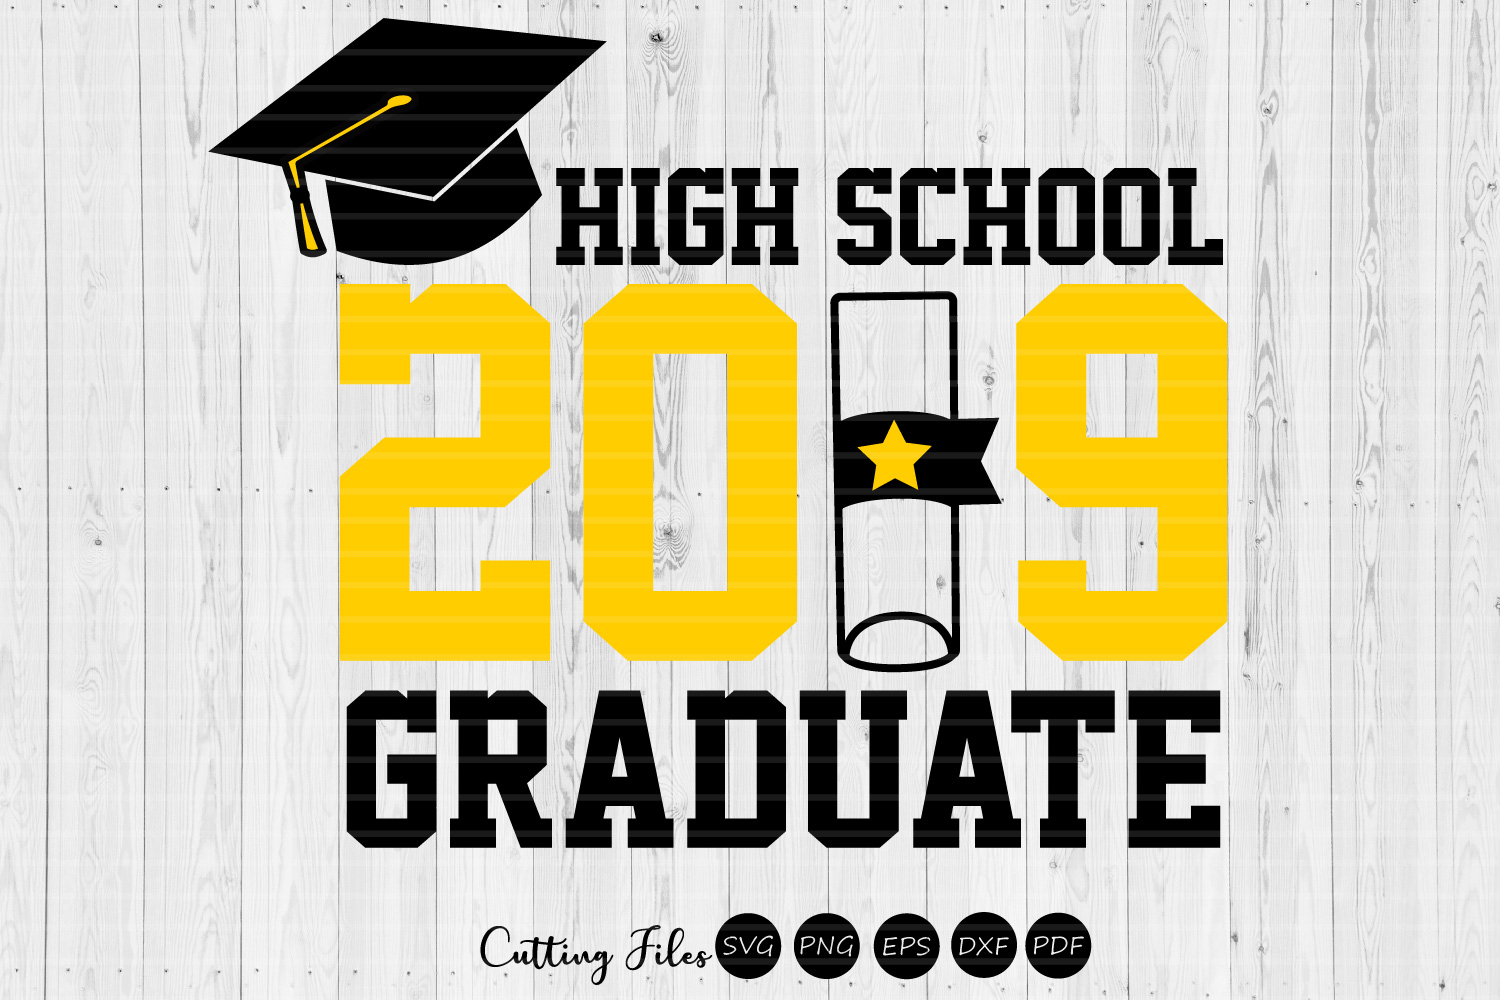 Download Free High School Gradute Graduation Svg Graphic By Hd Art Workshop for Cricut Explore, Silhouette and other cutting machines.